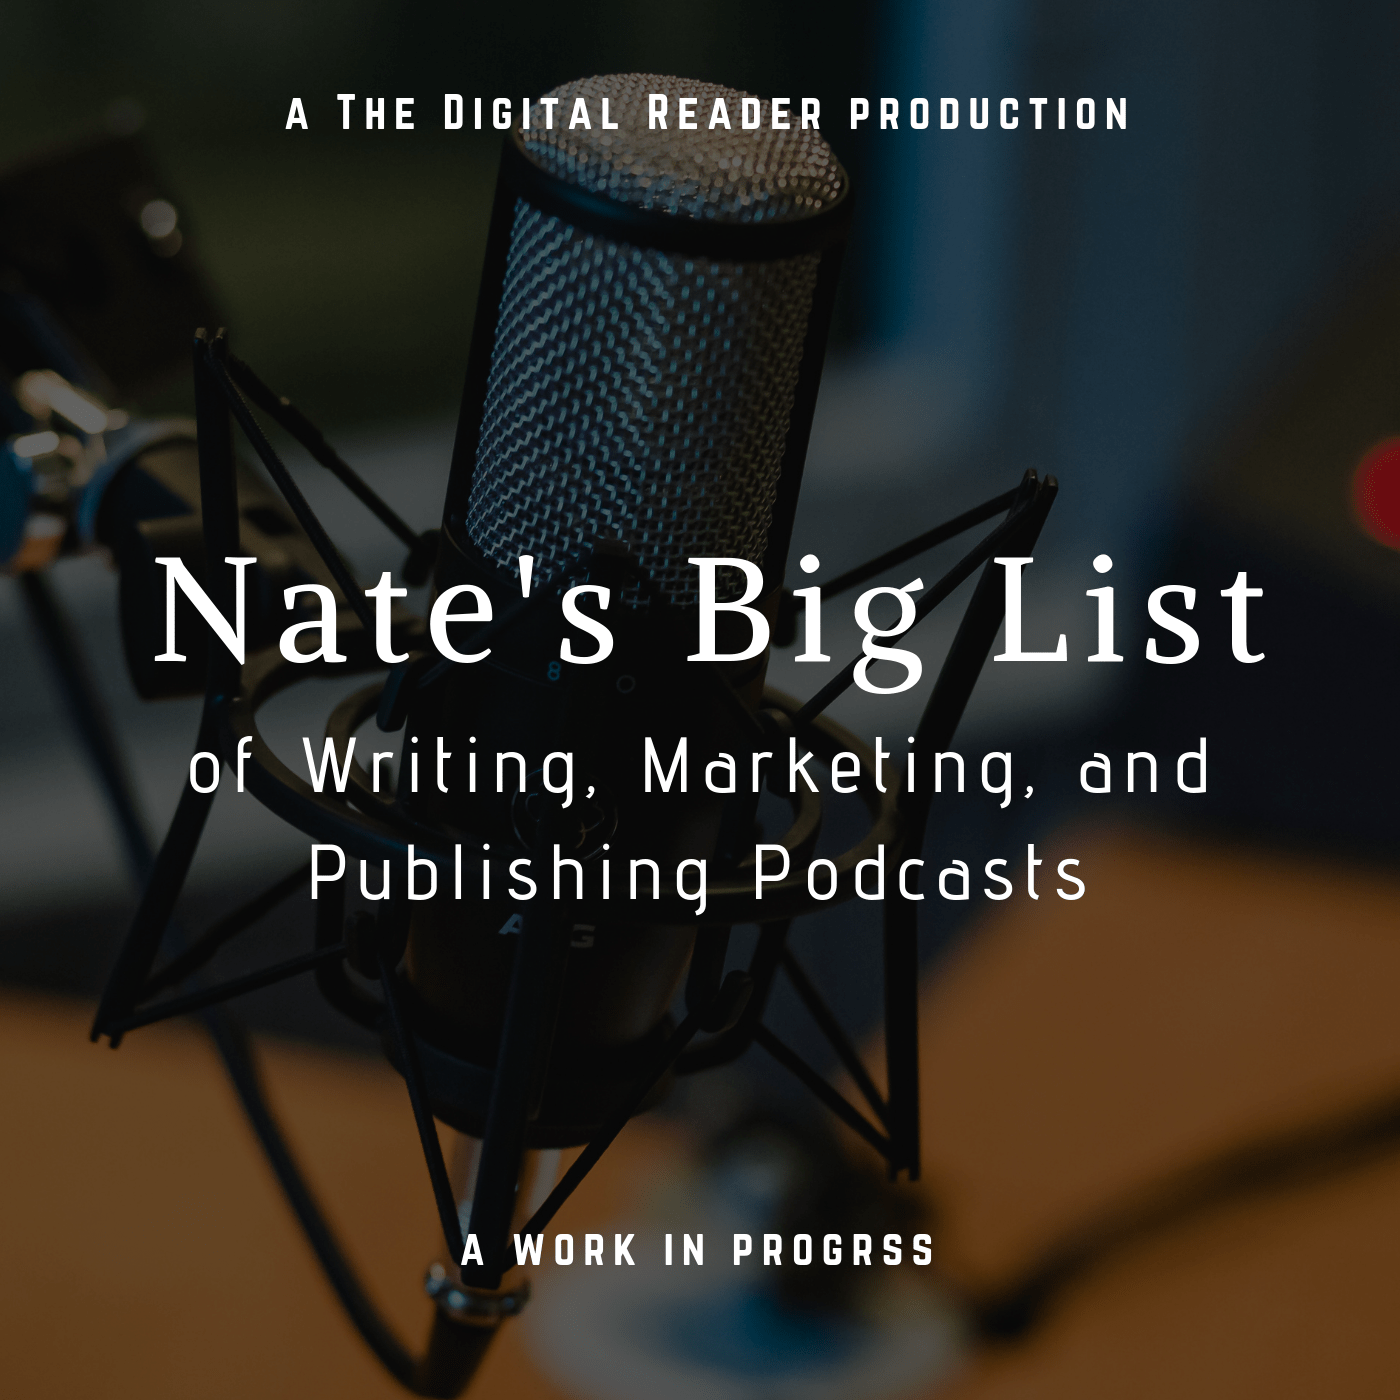 72300a8f53fe Nate's Big List of Writing, Marketing, and Publishing Podcasts Podcast  Self-Pub